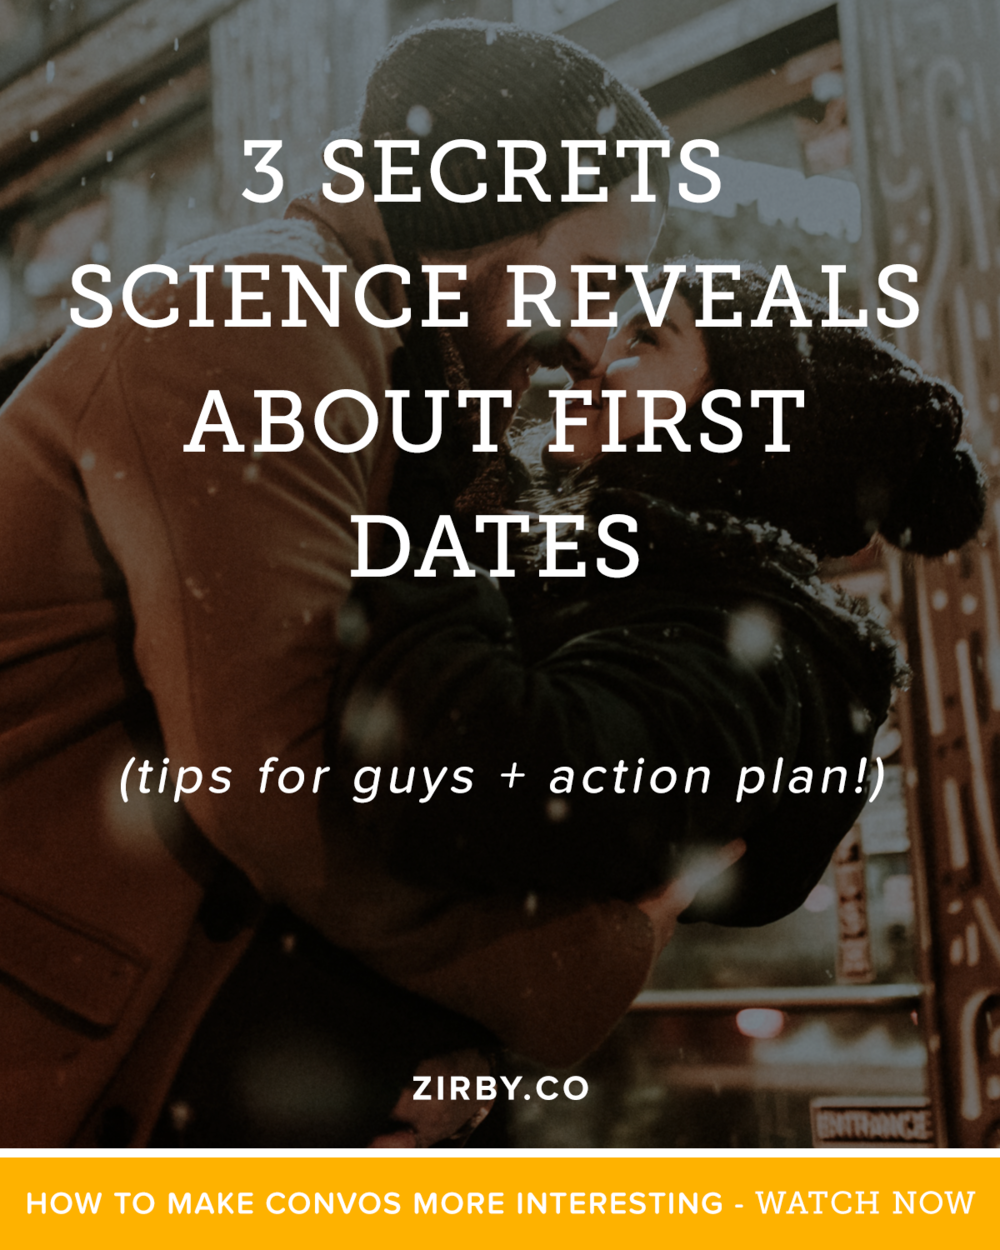 Today we're going to break down the 3 secrets that science reveals about amazing first dates, how to apply them to our own game, and most importantly, a step by step action plan to getting more skilled with conversation. By applying these principles you're on the road to having a successful second date. And a lot more beyond that... Let's dive in!